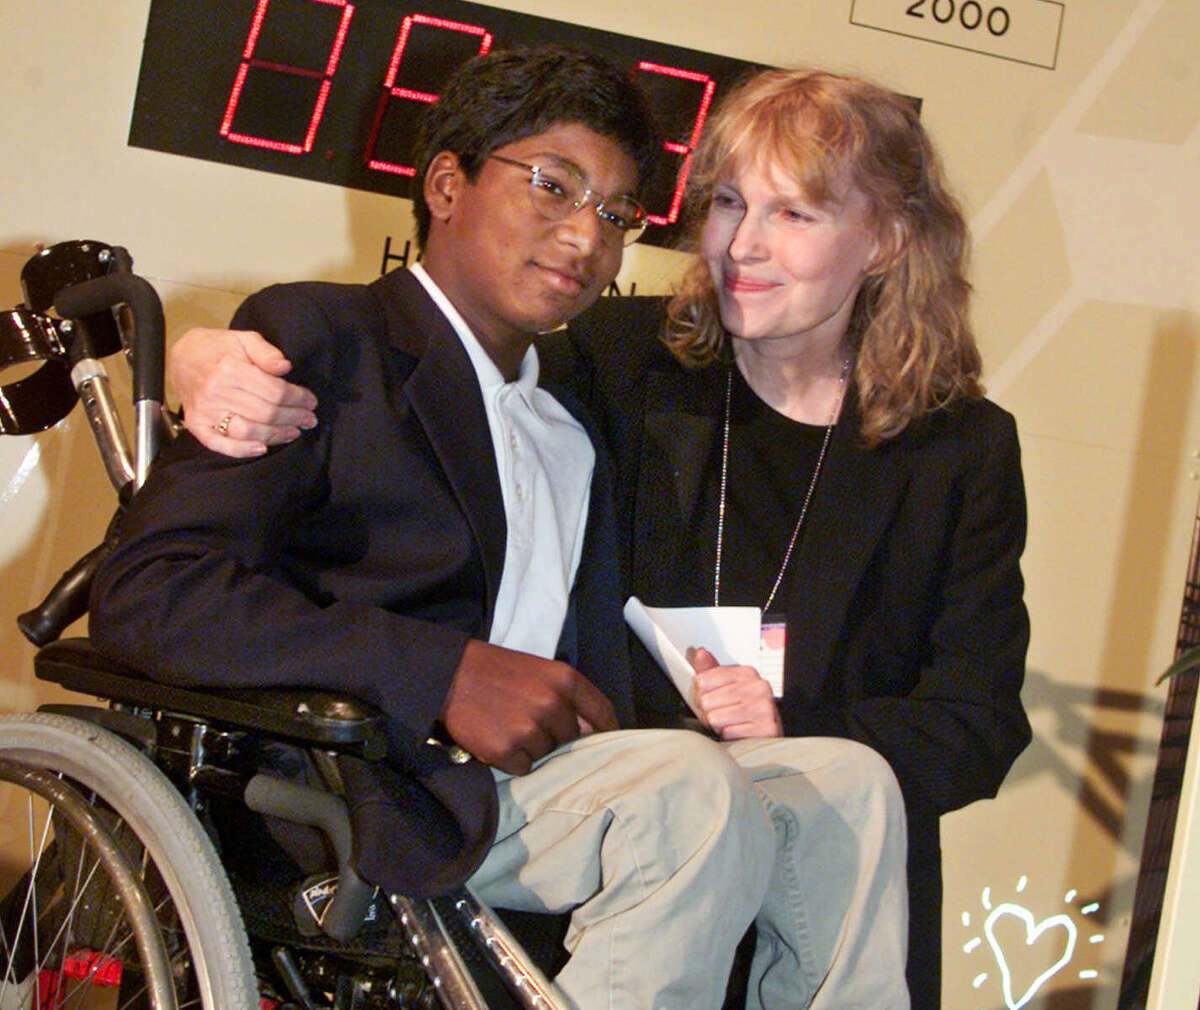 Actress Mia Farrow poses with her adopted son Thaddeus as they participate in the global summit on polio eradication at United Nations headquarters in 2000. Thaddeus Wilk Farrow, died, Wednesday, Sept 21, 2016, after being found seriously injured in his vehicle in Connecticut. The death was ruled a suicide. He was 27.